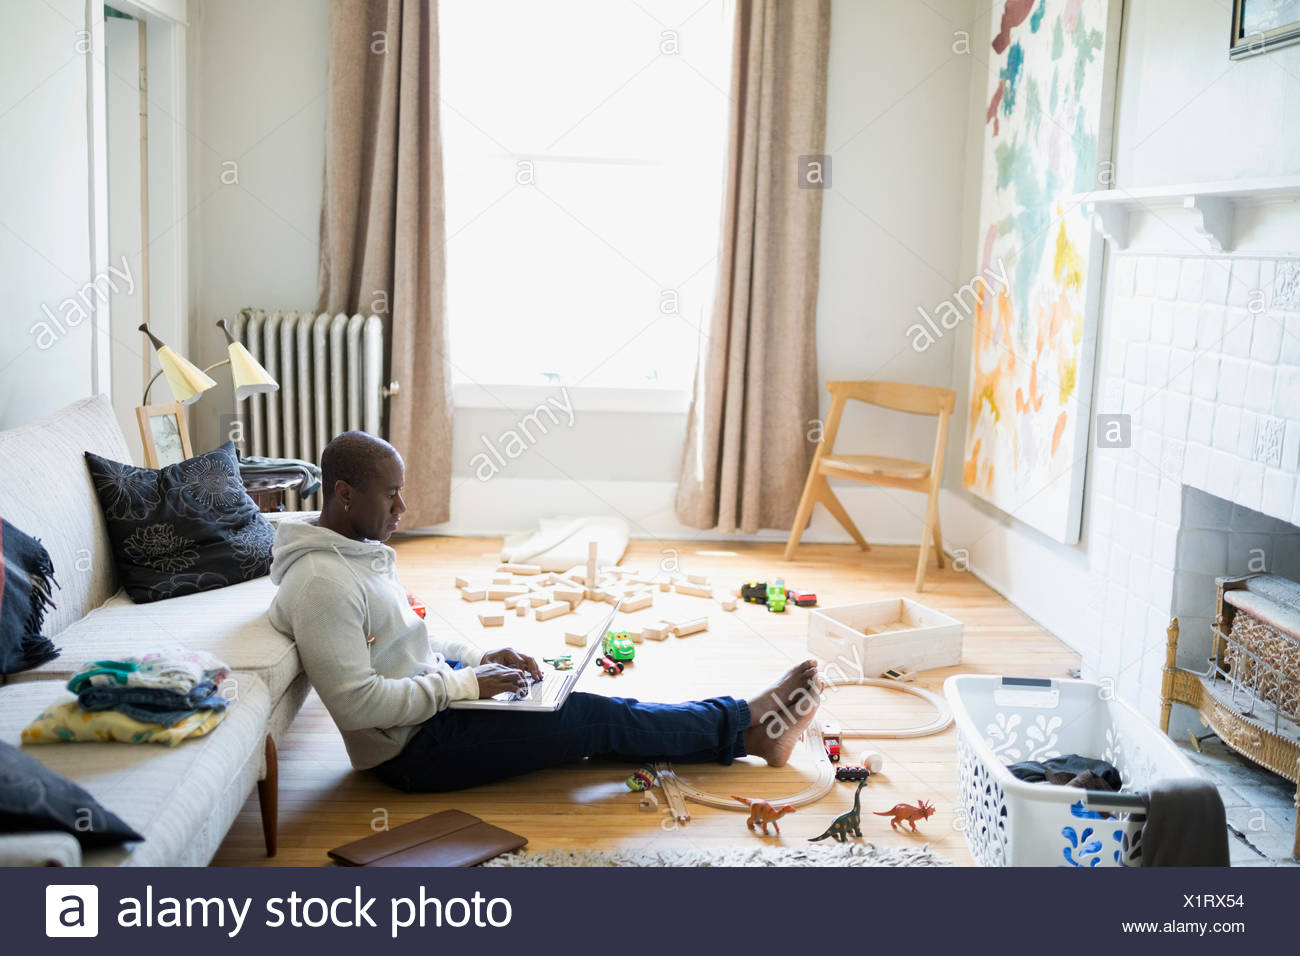 Messy Living Room Stock Photos & Messy Living Room Stock Images - Alamy